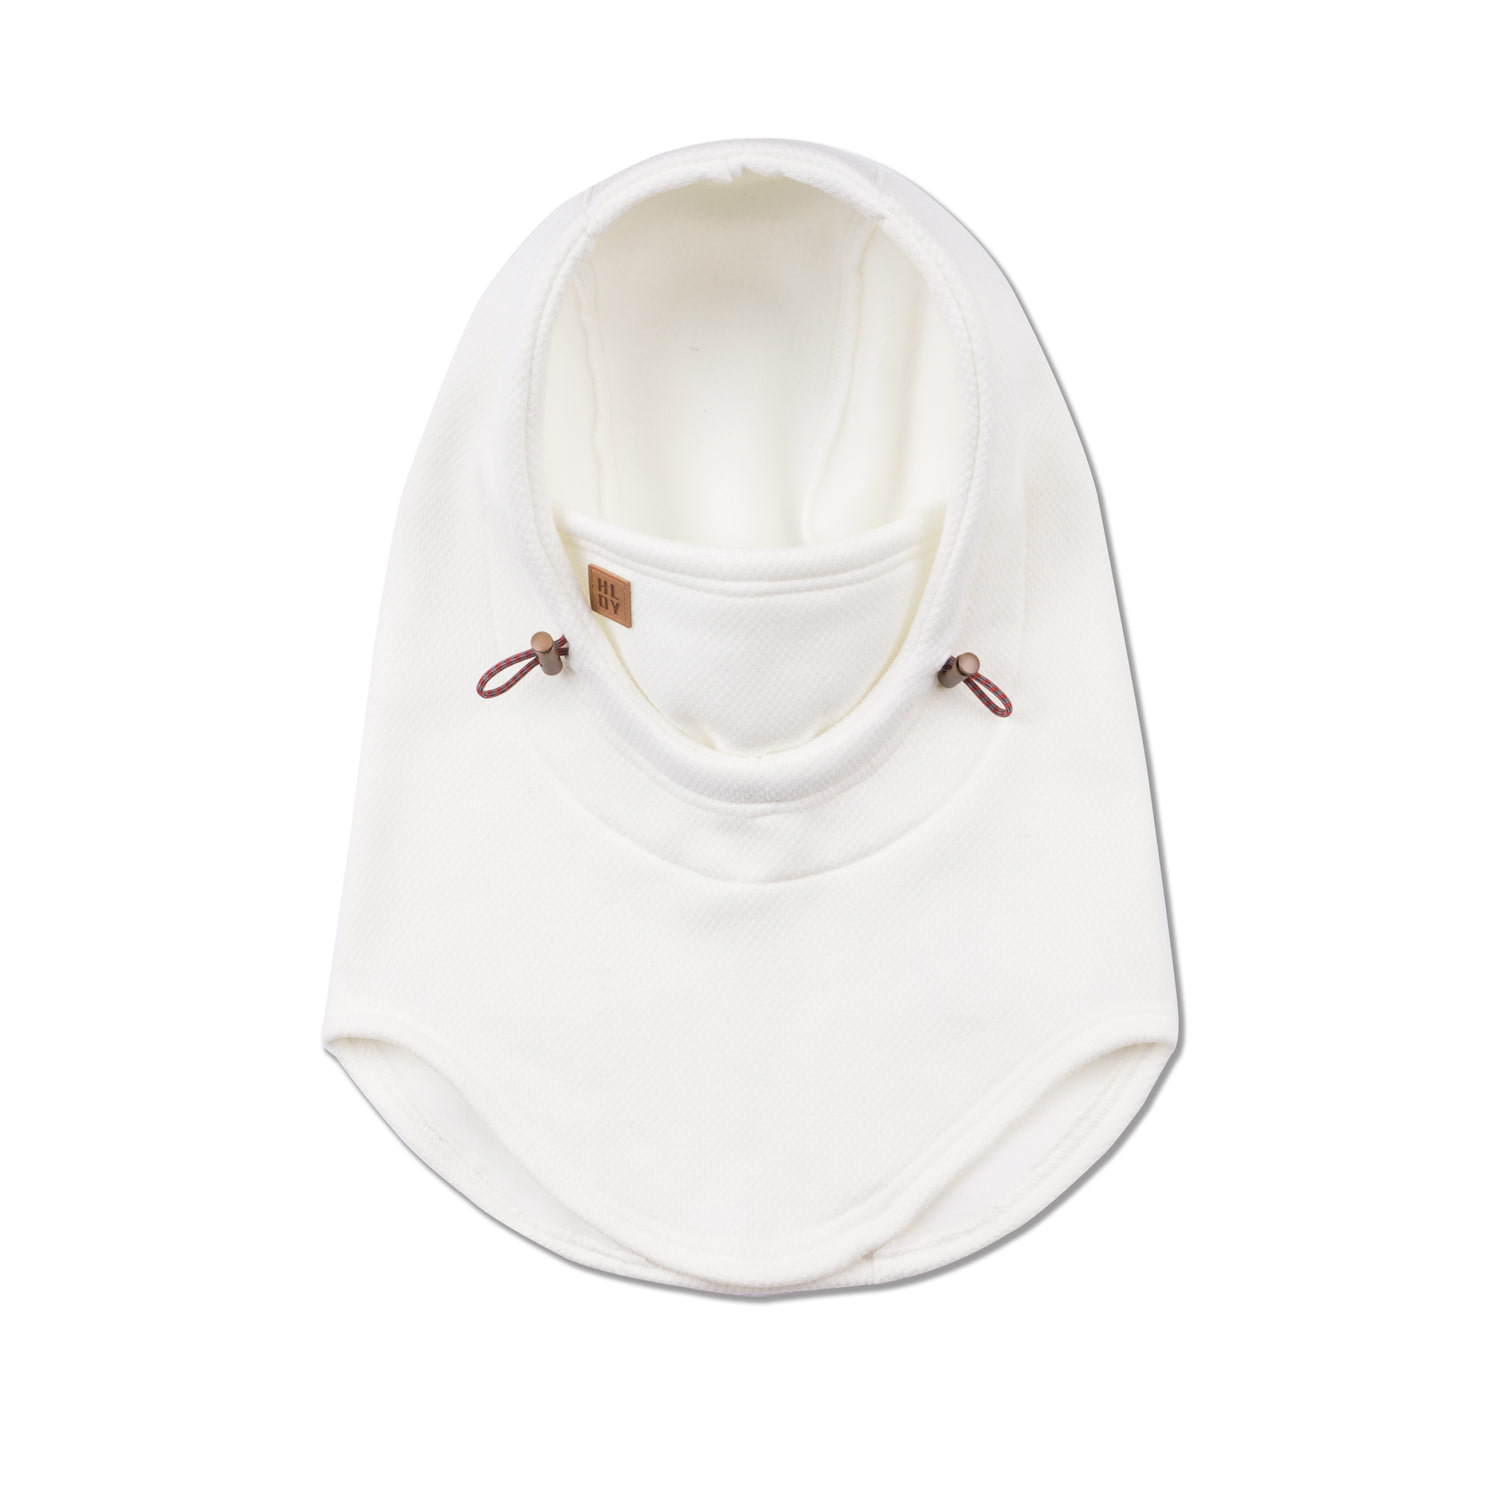 BASIC hood warmer- white